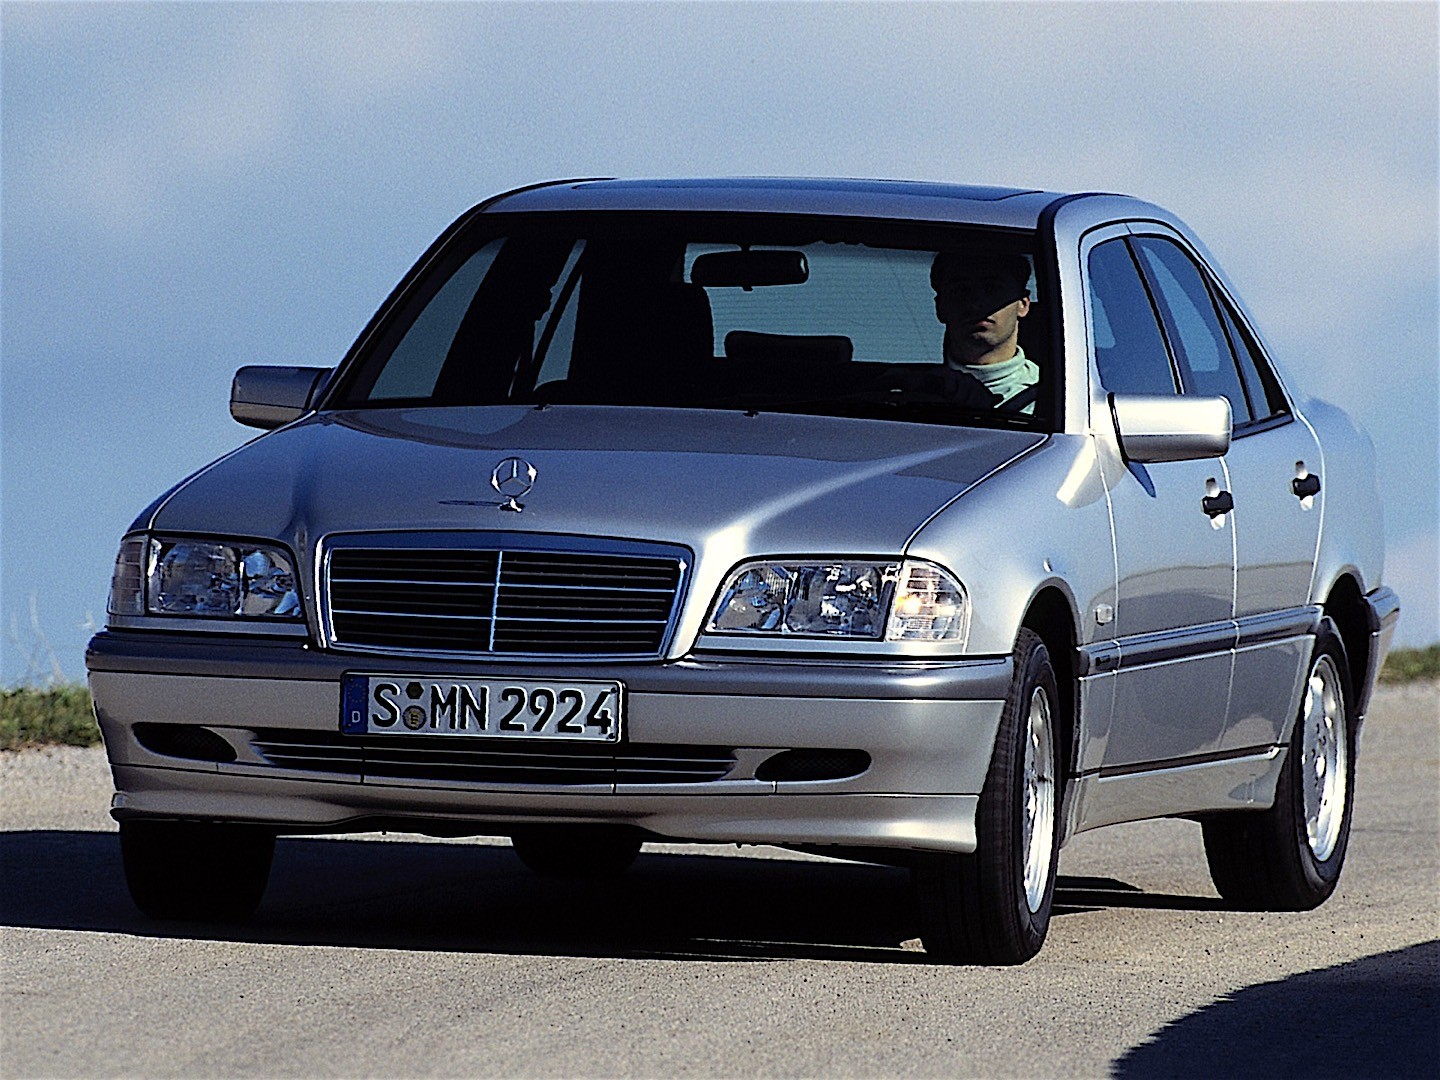 mercedes benz c klasse w202 specs 1993 1994 1995. Black Bedroom Furniture Sets. Home Design Ideas